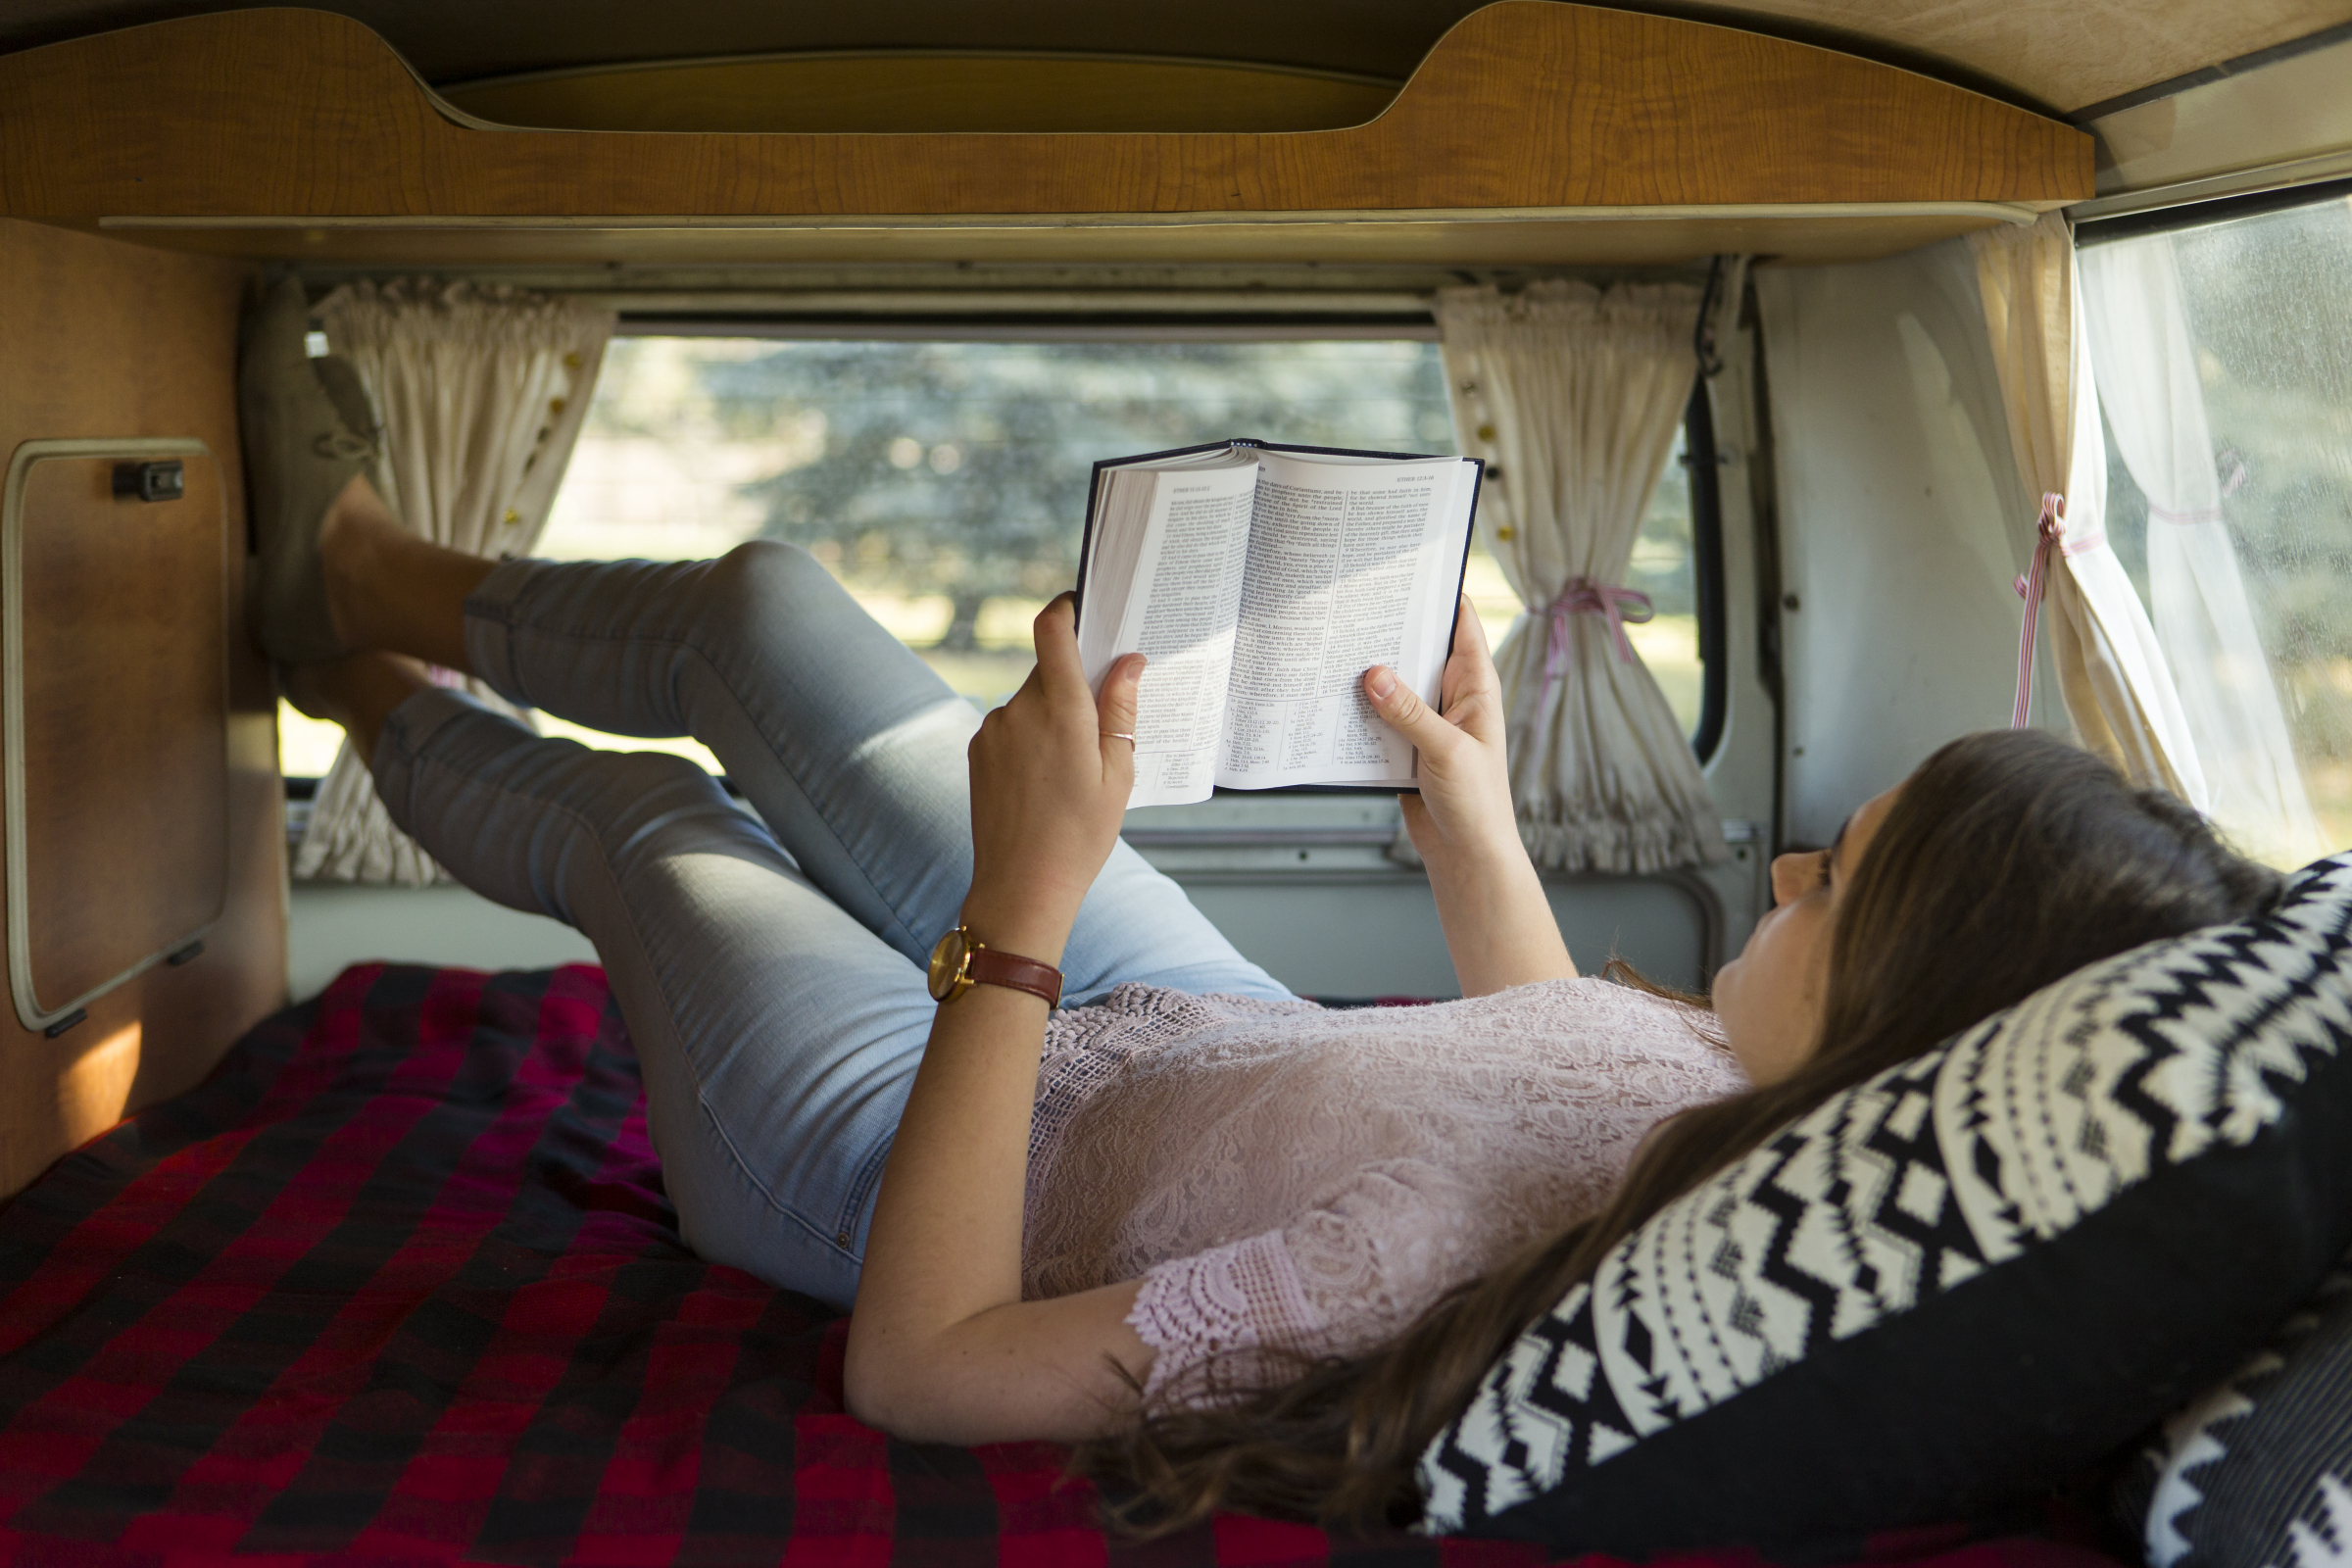 A woman lays on a bed in a camper and reading the Bible learning about faith